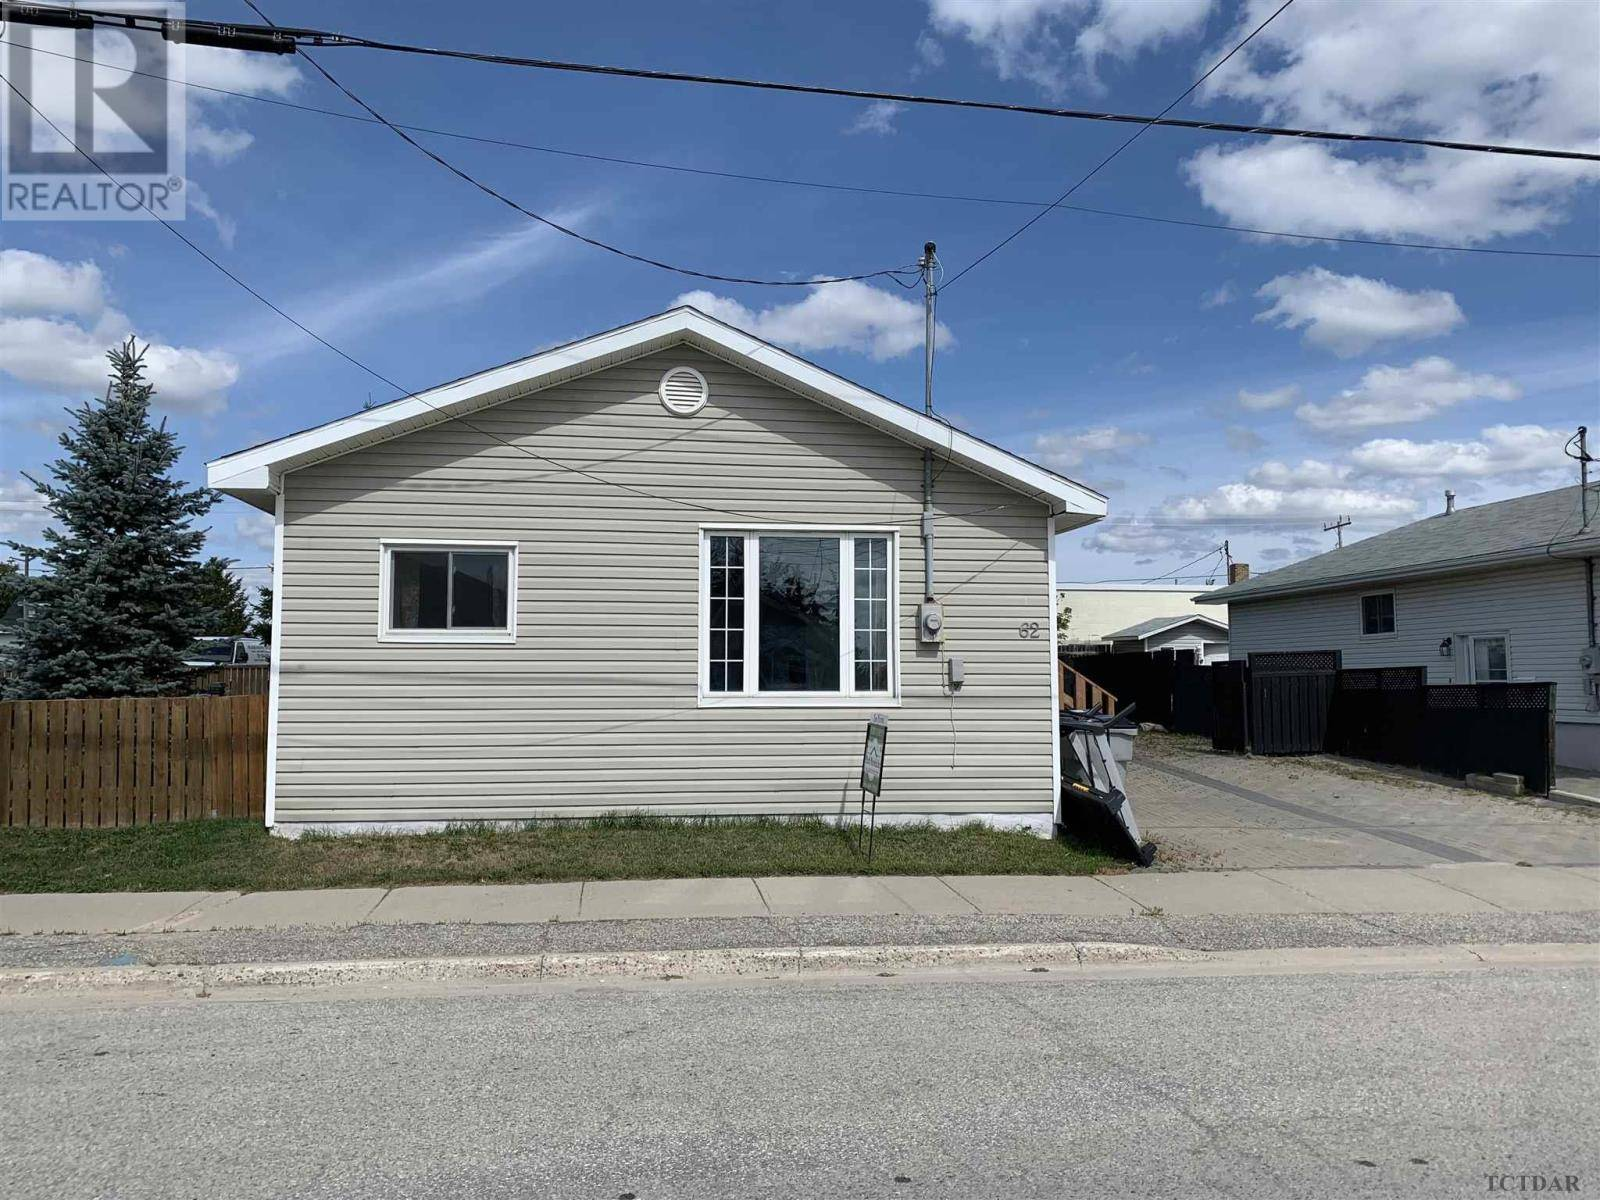 House for sale at 62 Golden Ave Timmins Ontario - MLS: TM200150